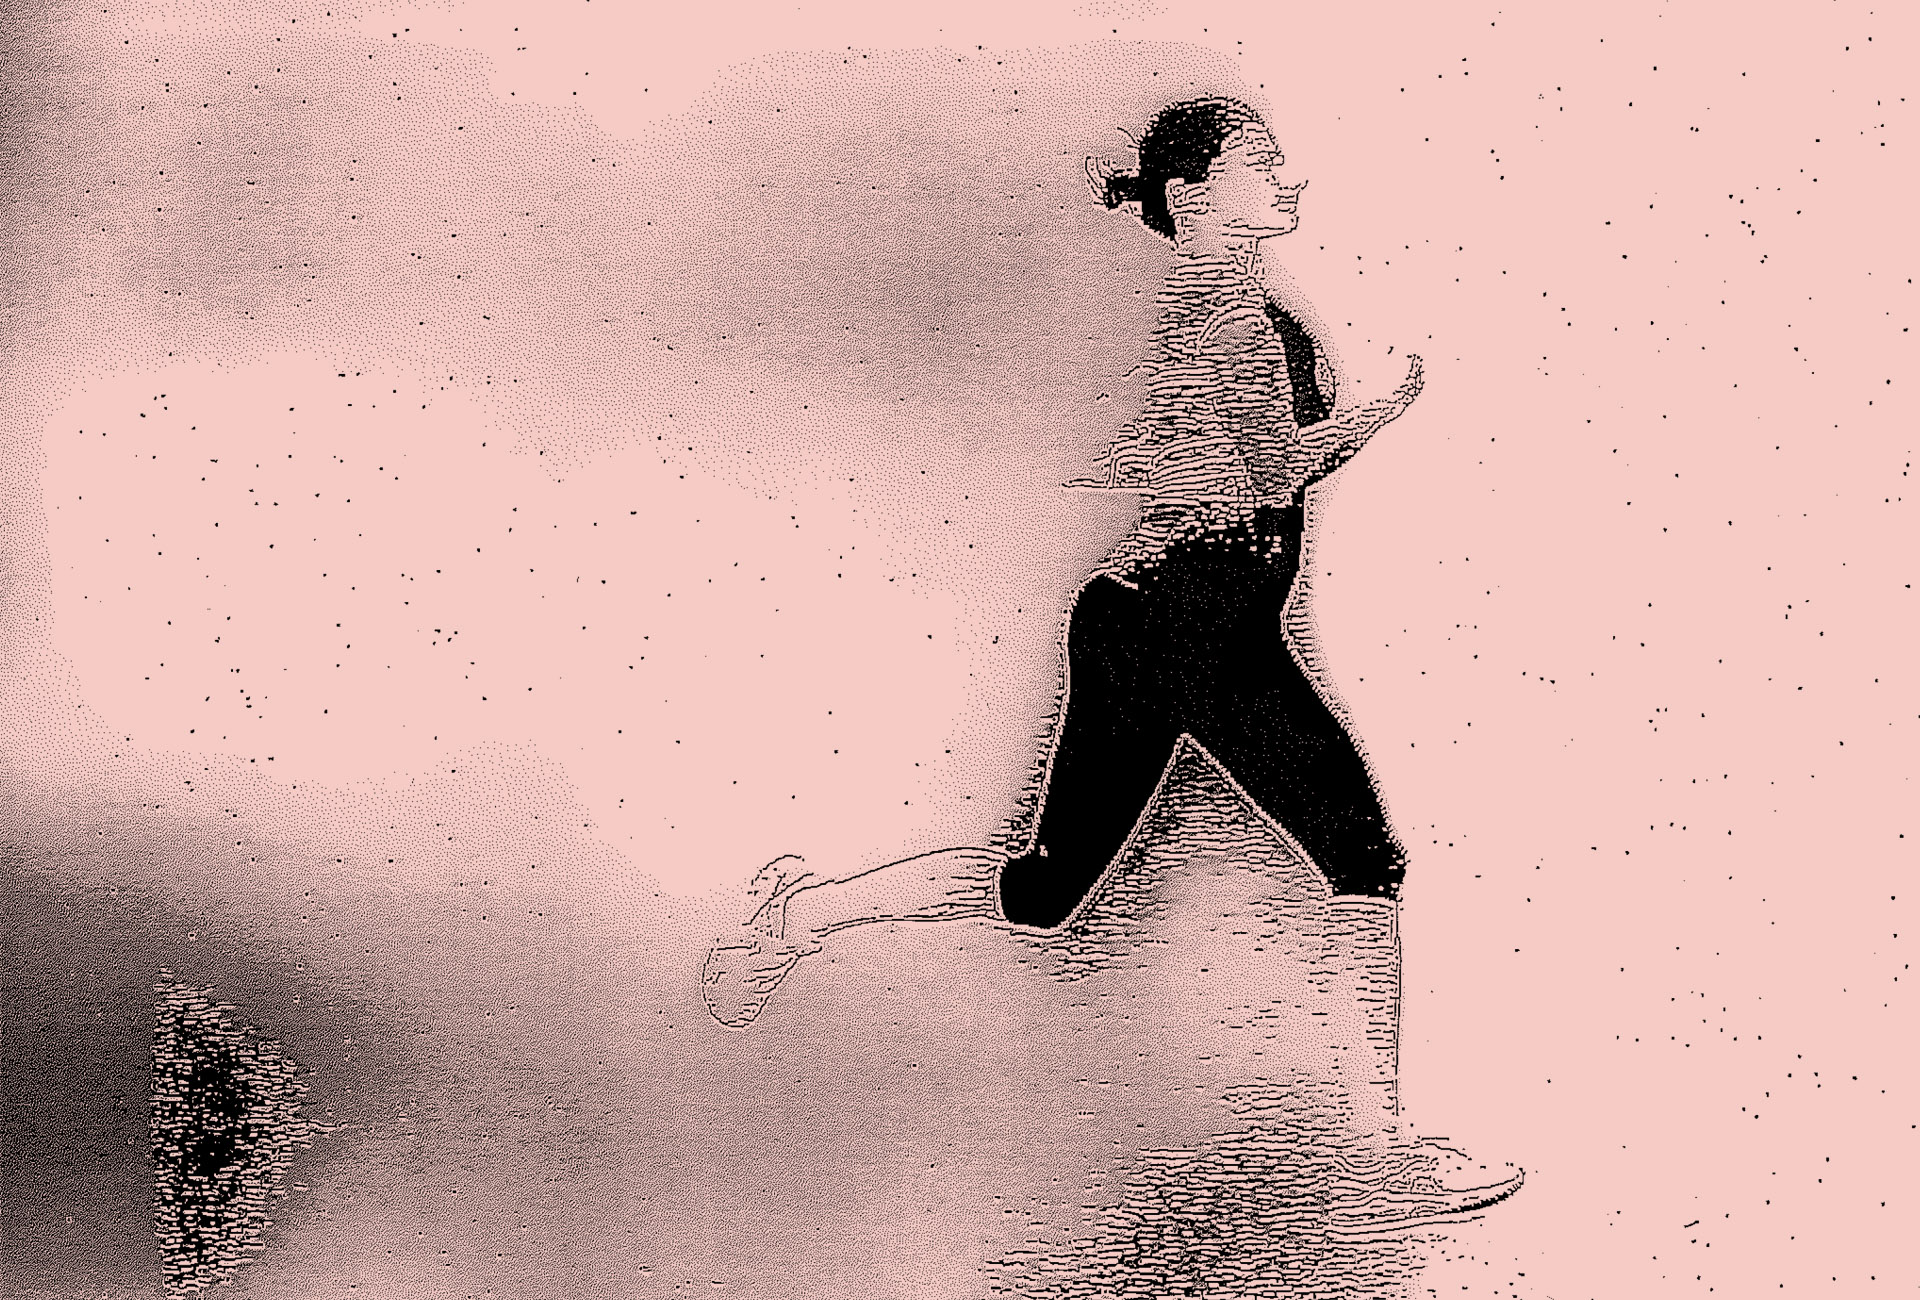 Running woman slowly decaying through a photocopy technique.